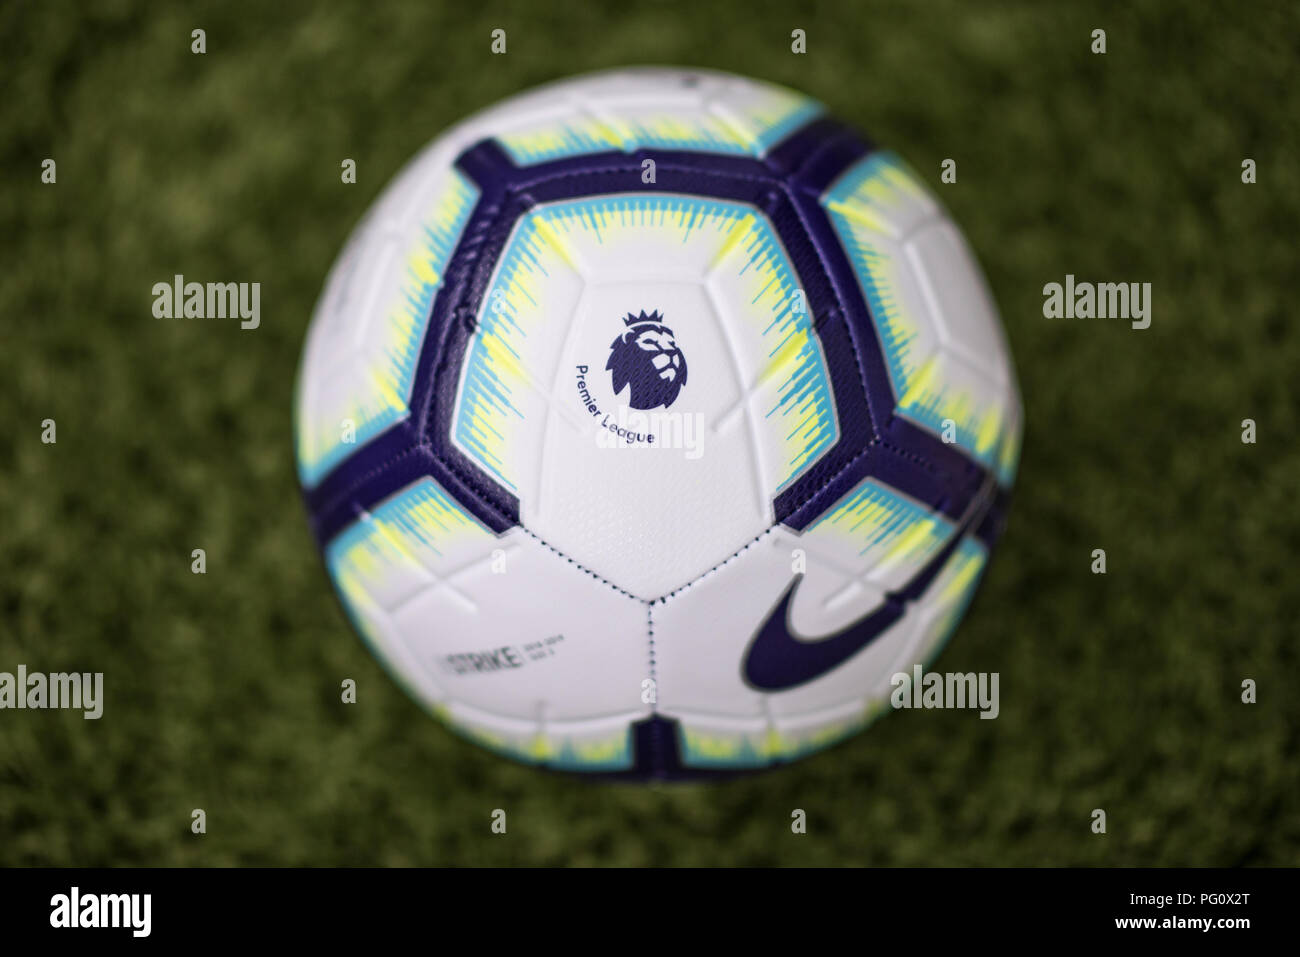 3fba65541a60f Nike Merlin ball for 2018 19 Premier League season Stock Photo ...